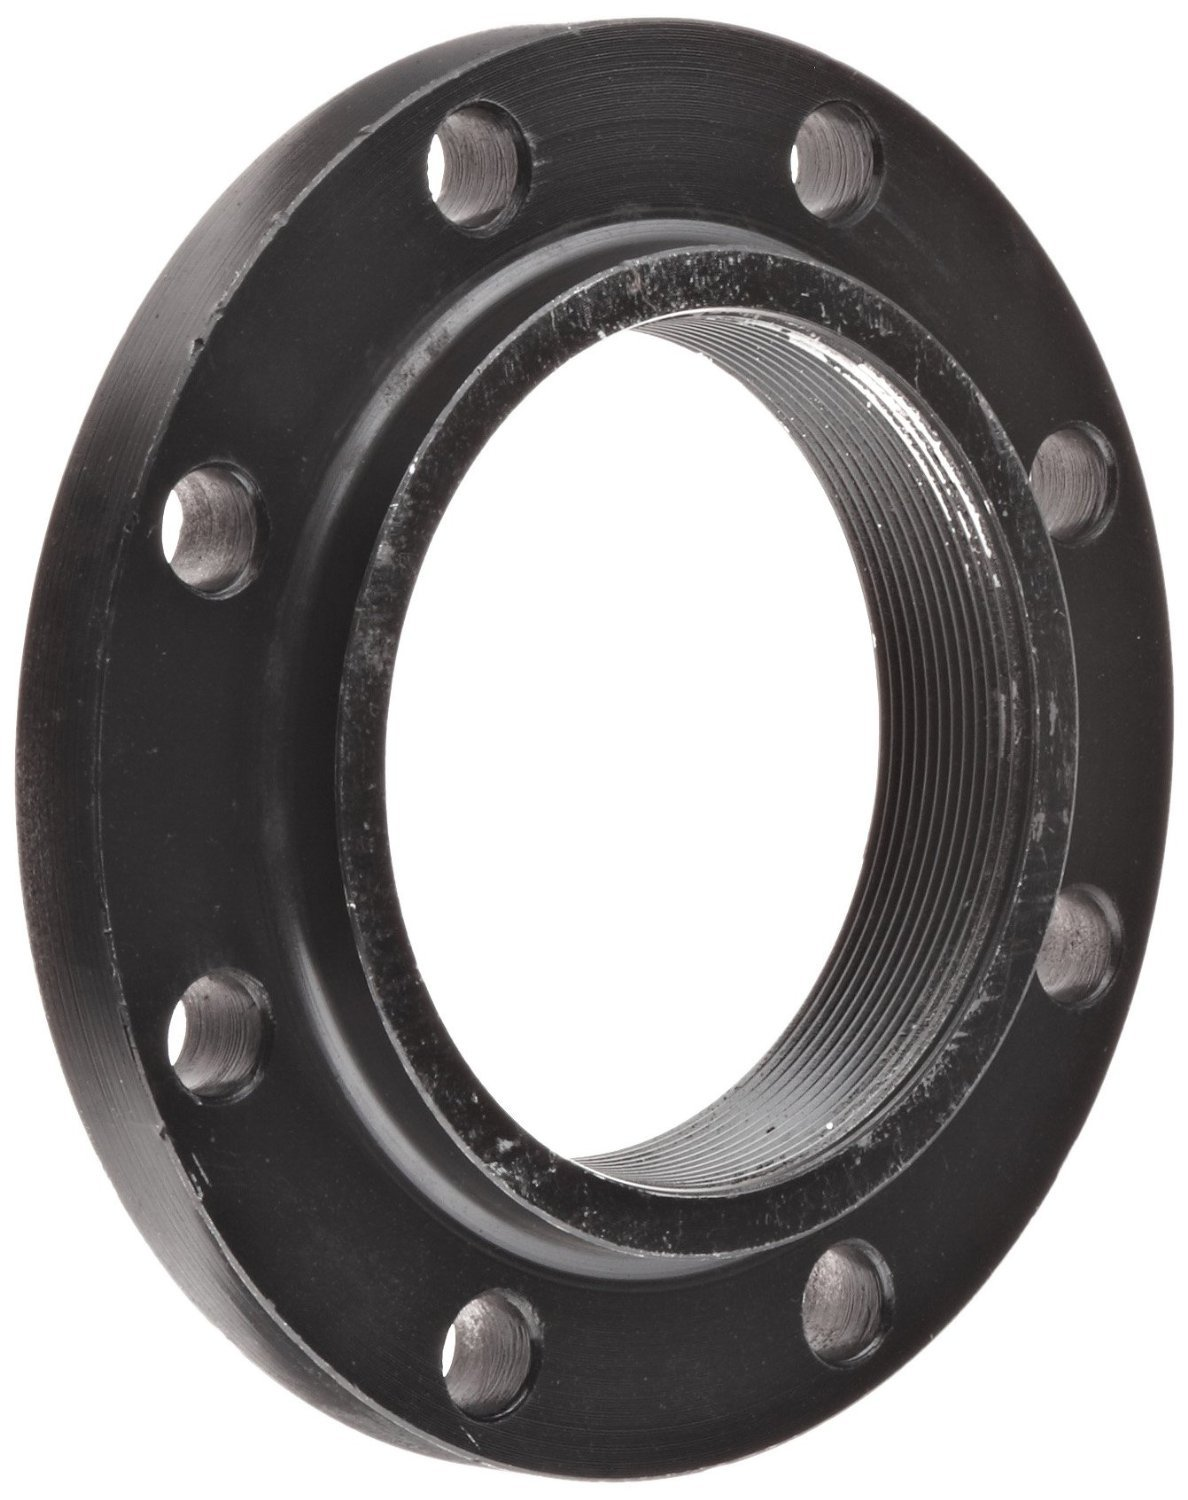 Dixon T600 Carbon Steel Pipe and Welding Fitting, 150lbs ASA Forged Flange, 6'' NPT Female